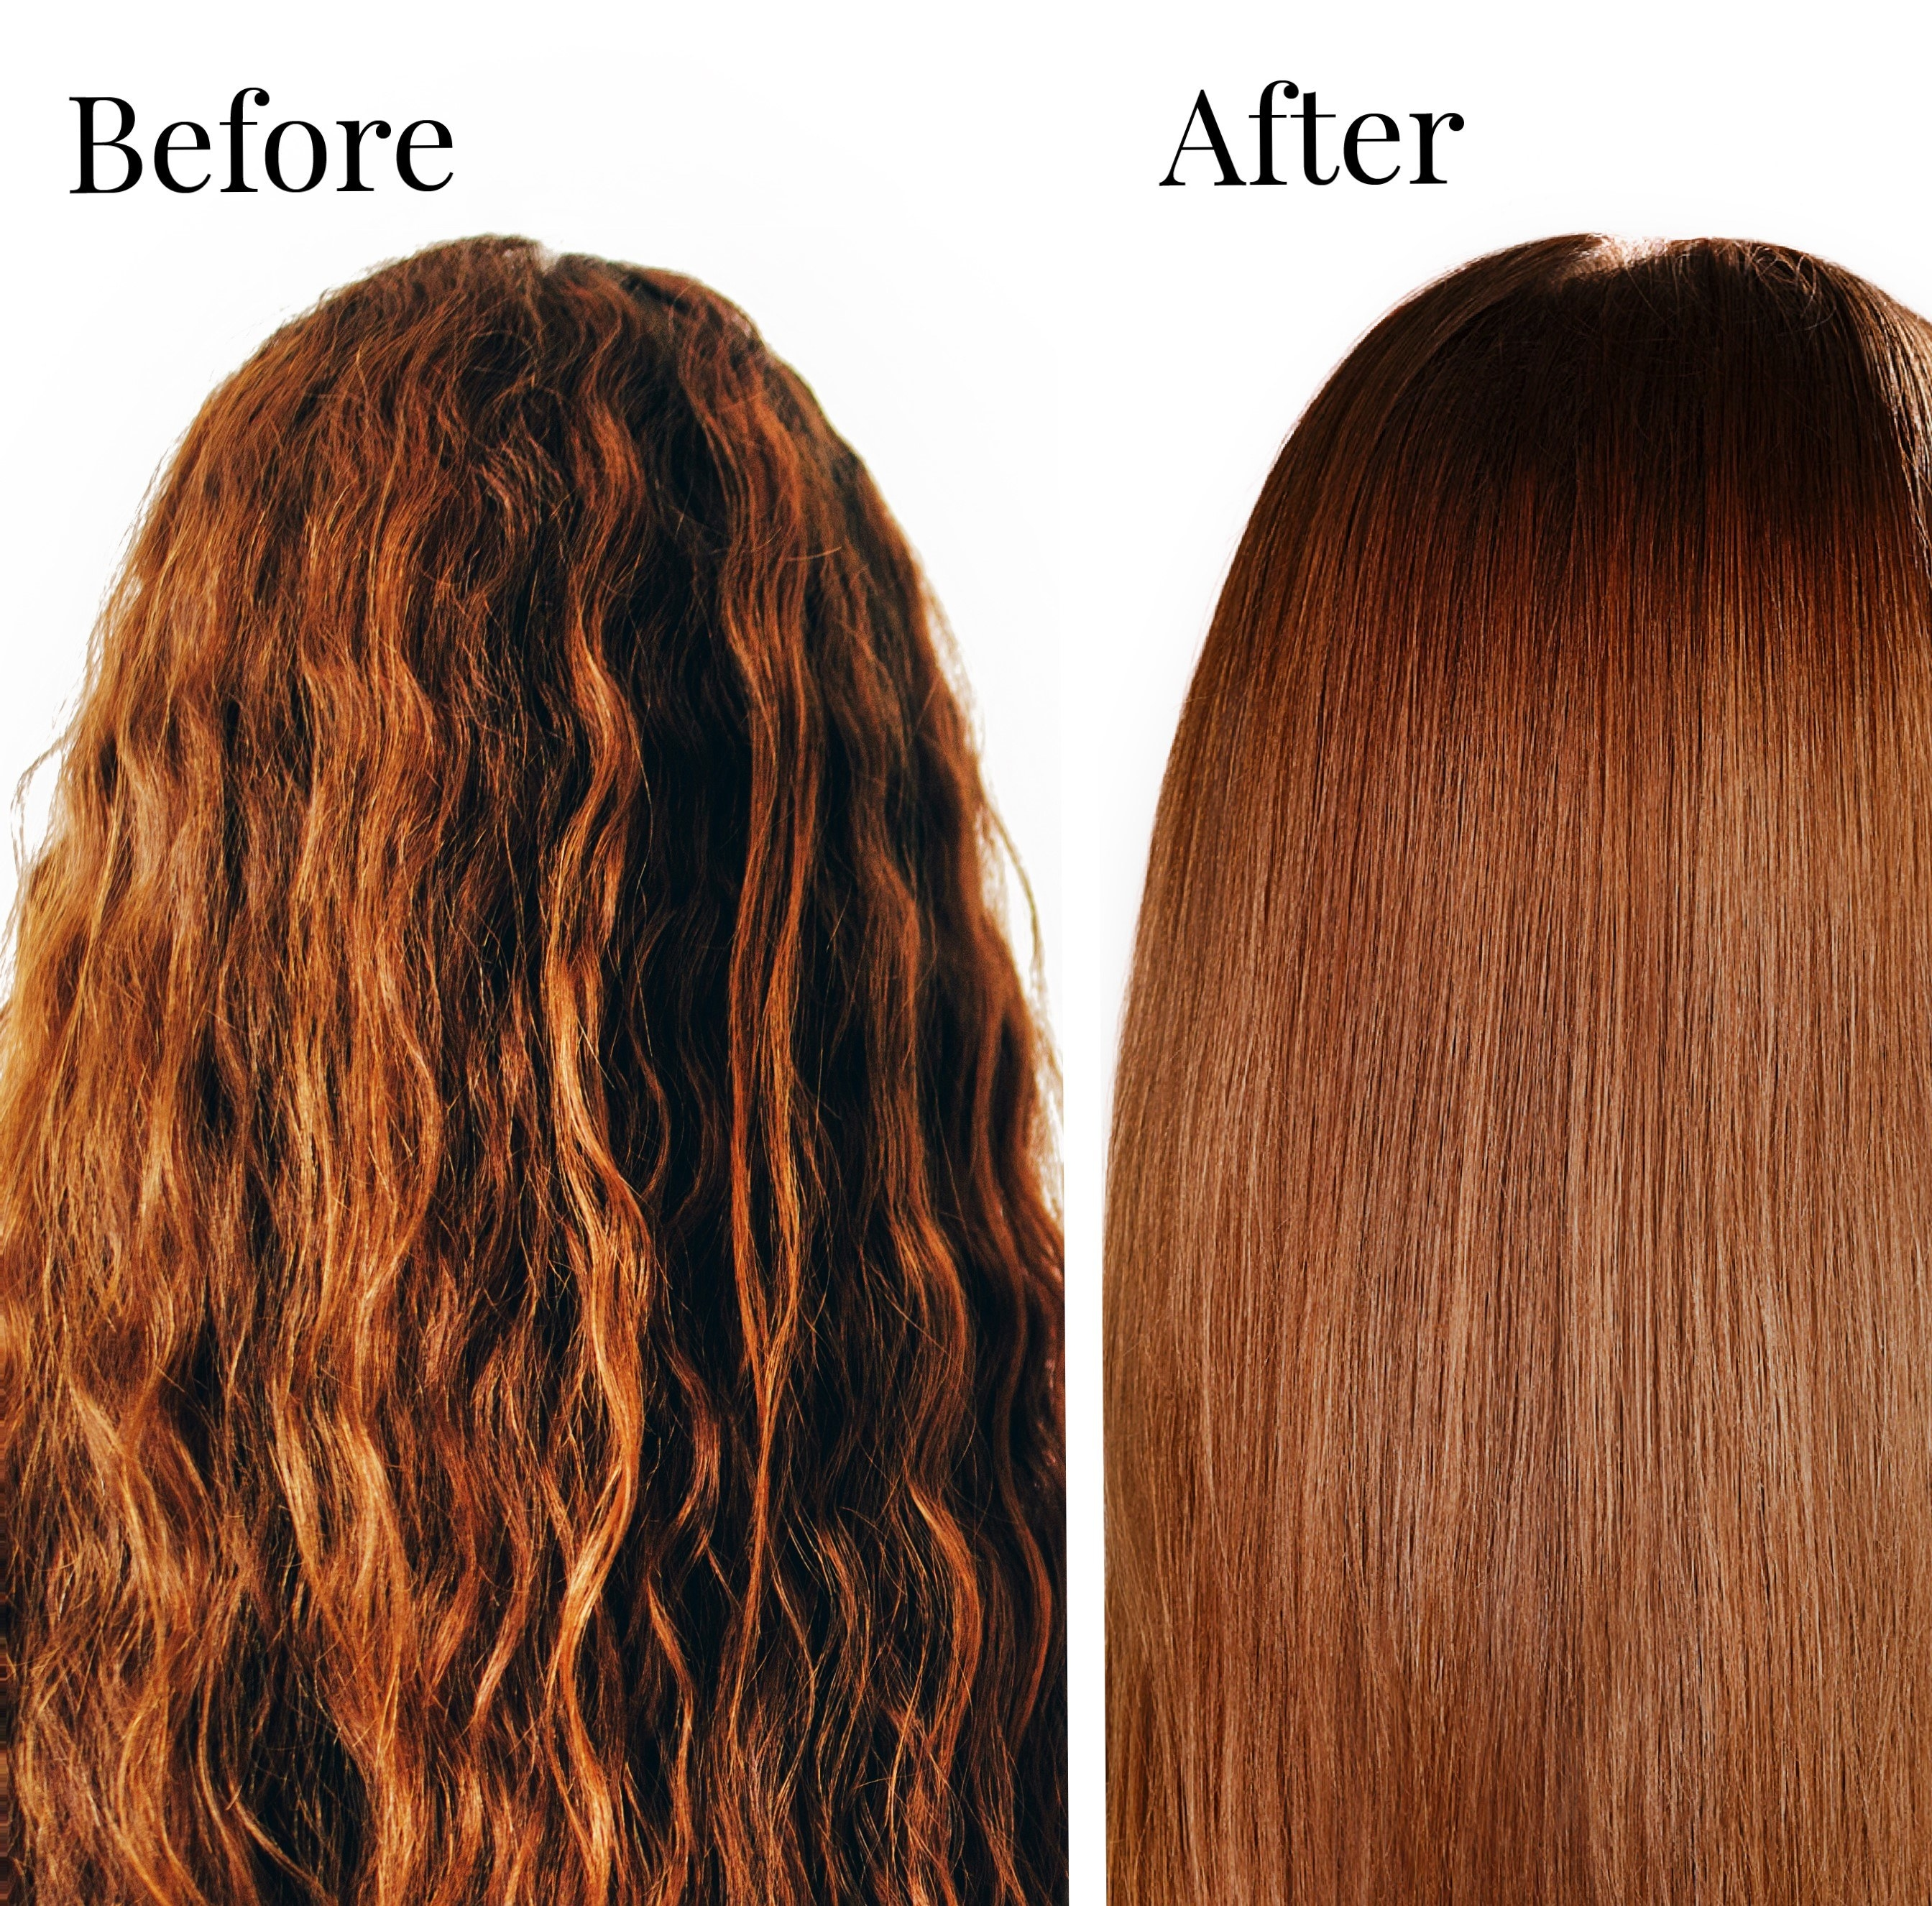 A before and after photo of wavy hair and straight hair